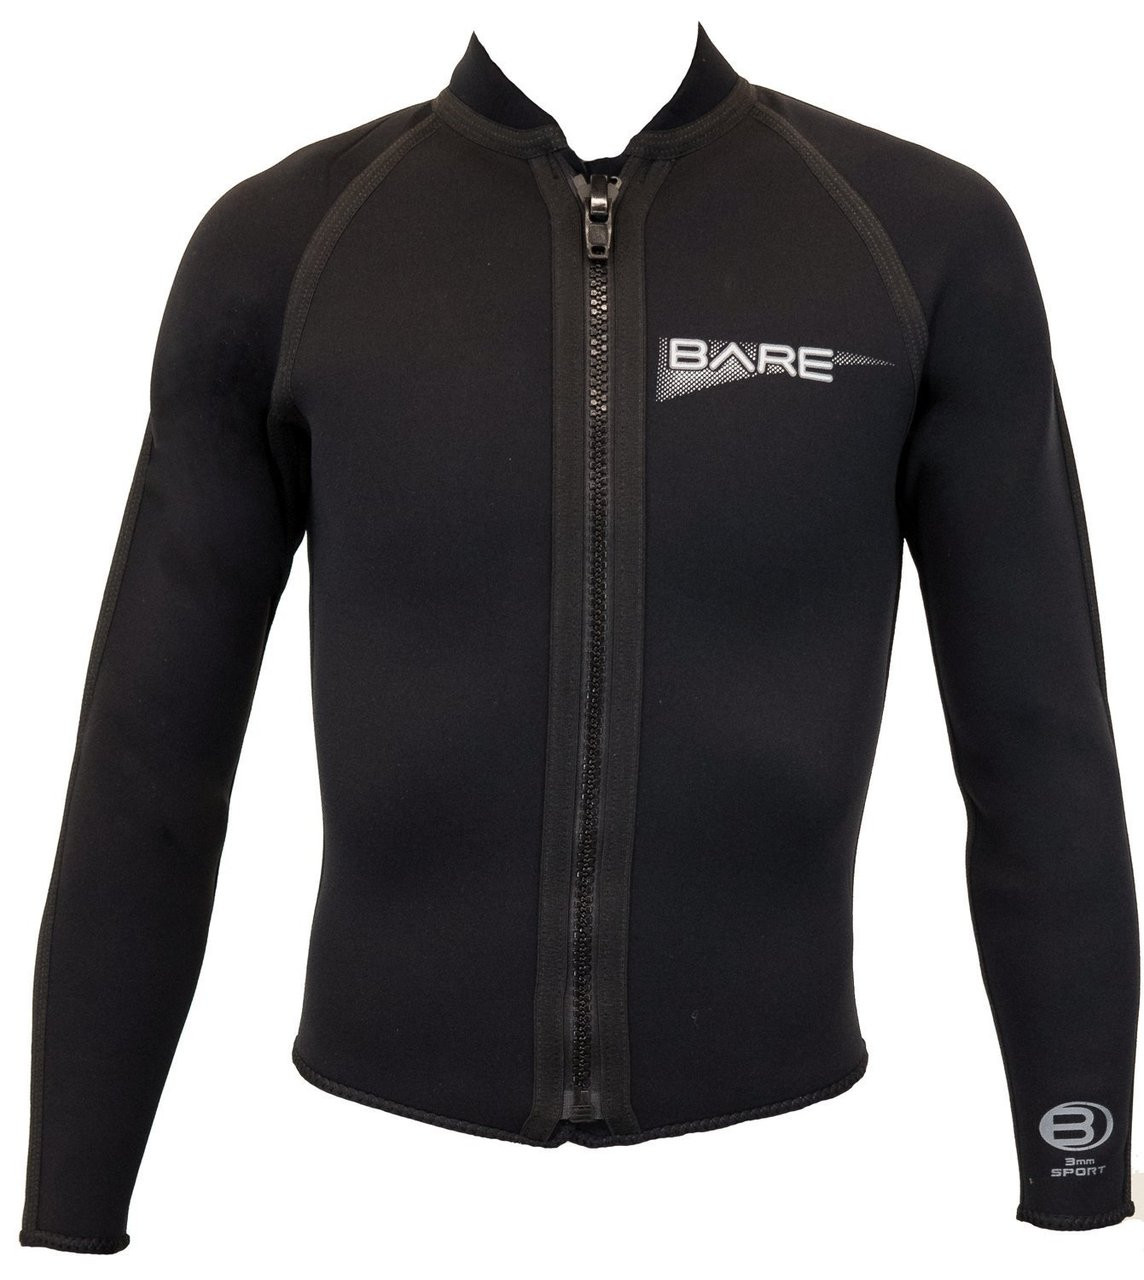 Bare 3mm Sport Front Zip Jacket Wetsuit Men's